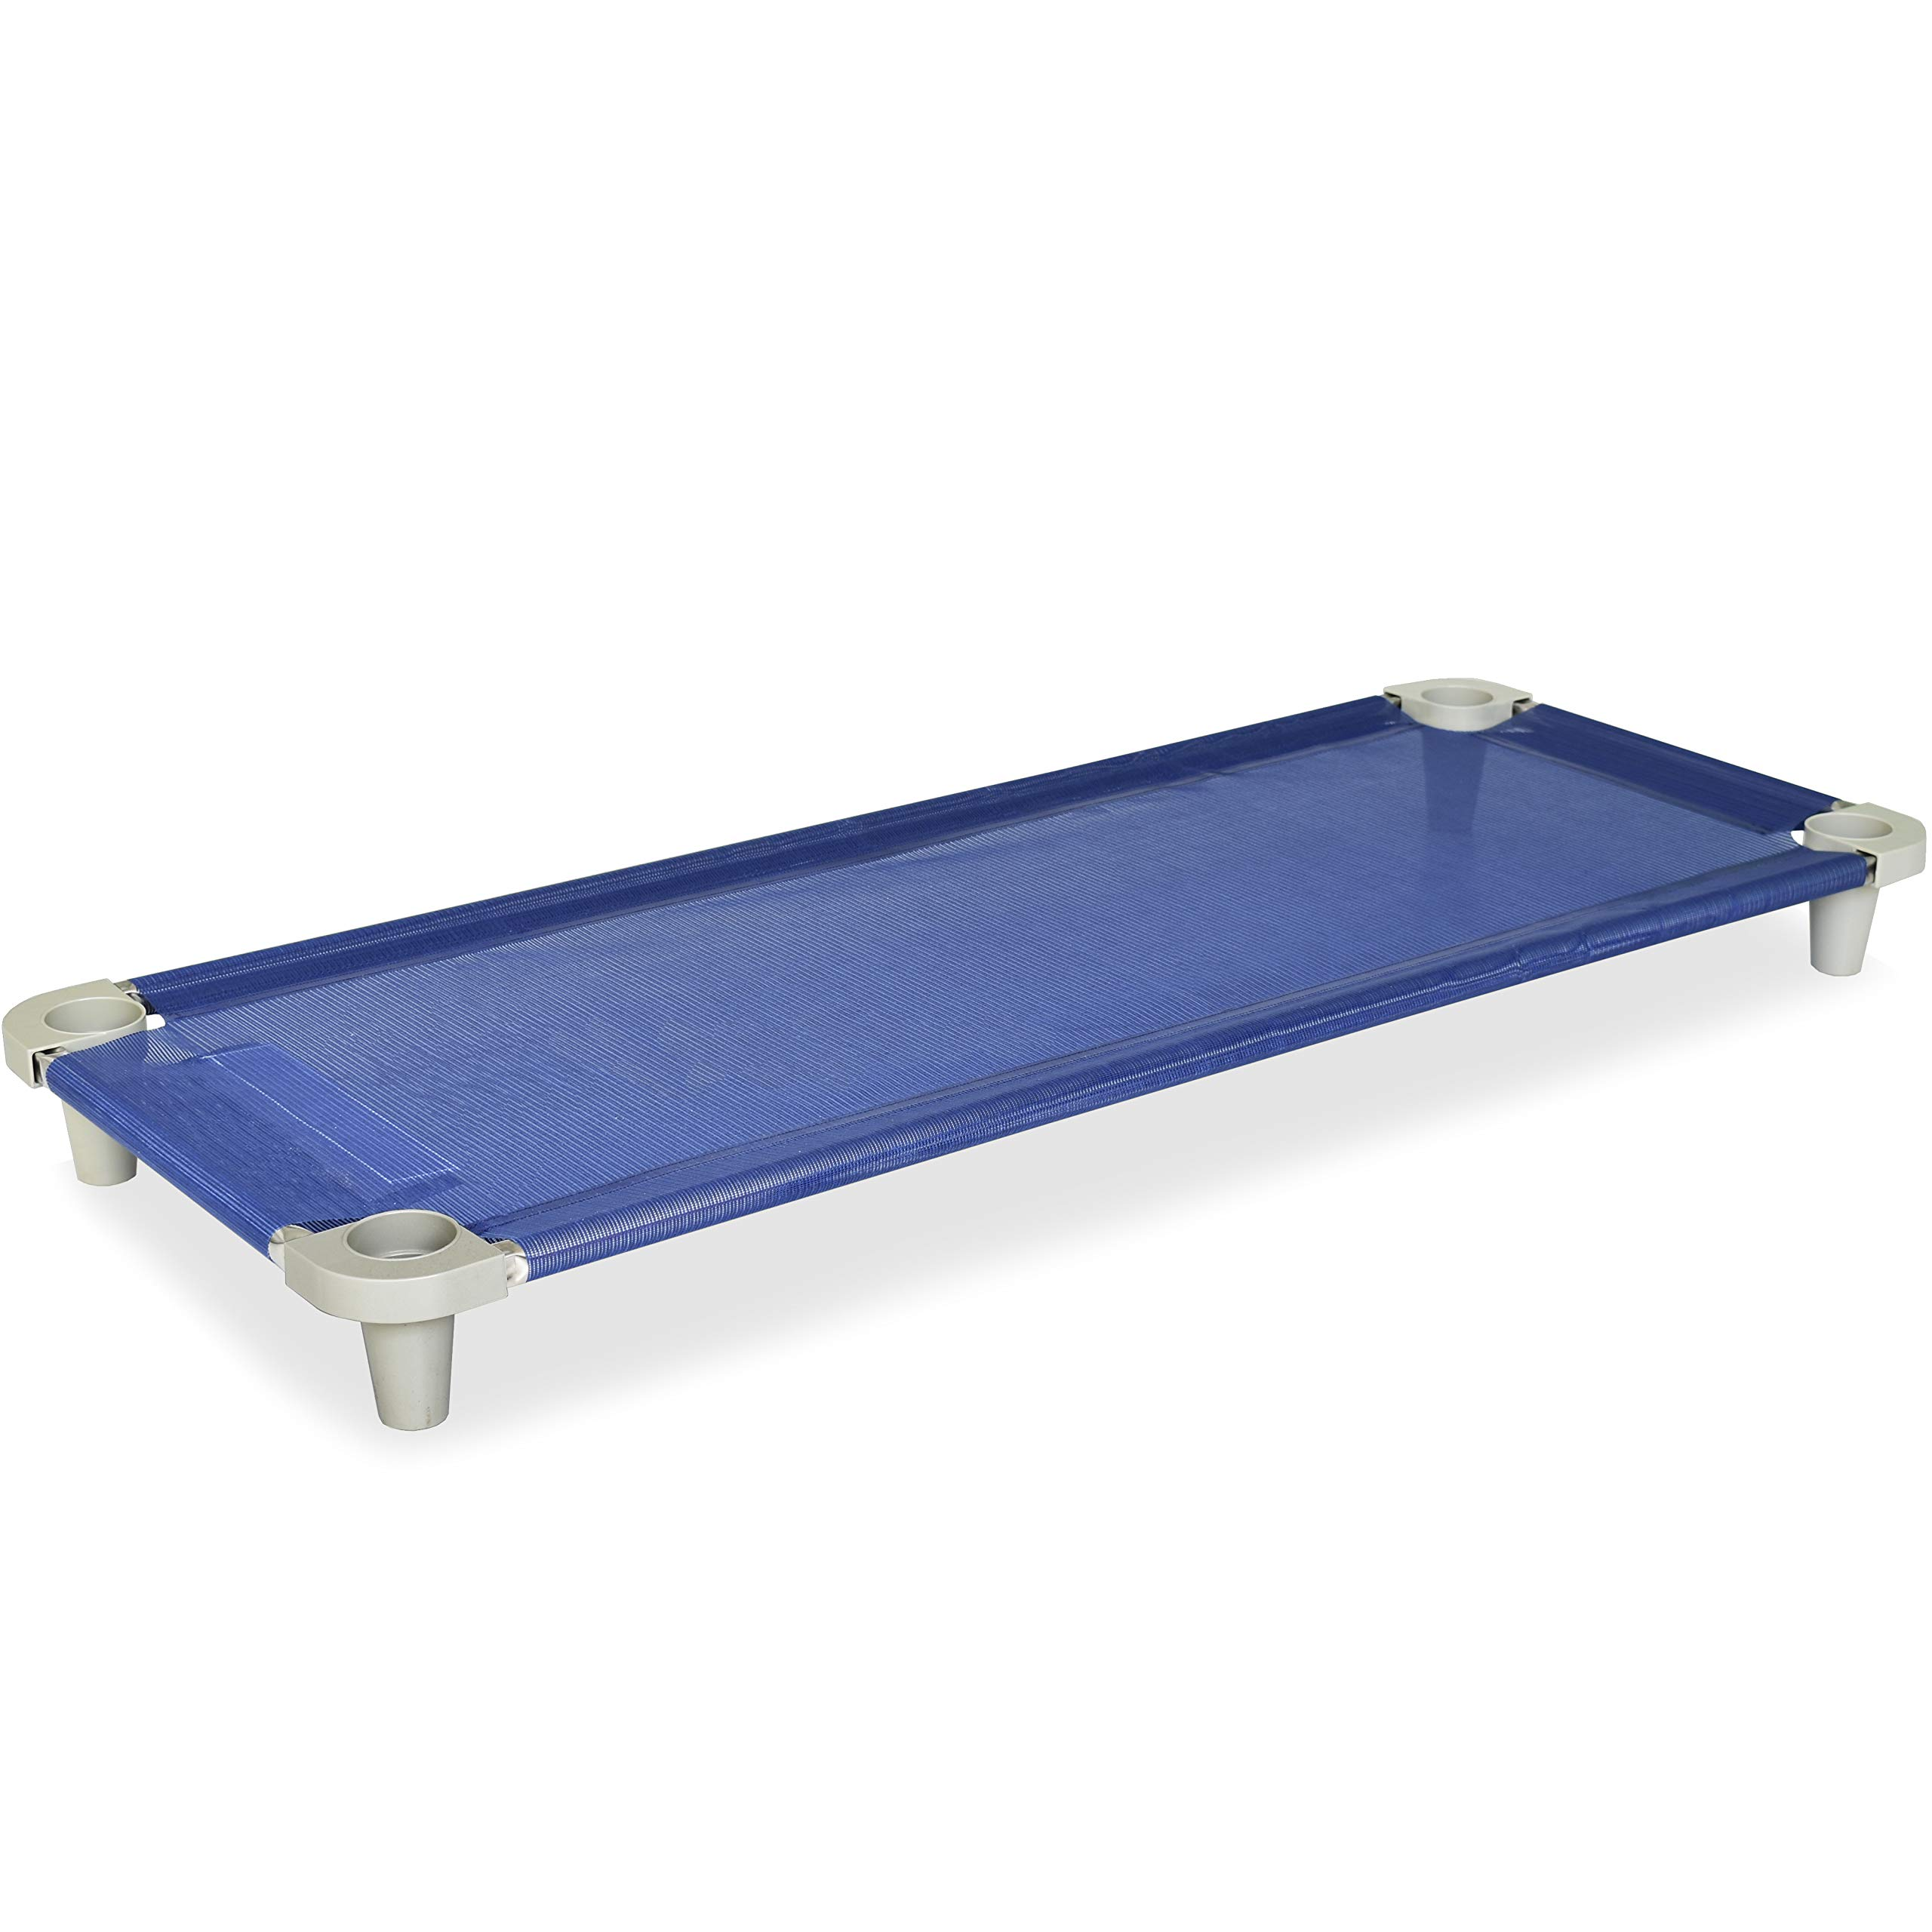 Acrimet Premium Stackable Nap Cot (Stainless Steel Tubes) (Blue Cot - Grey Feet) (1 Unit) by Acrimet